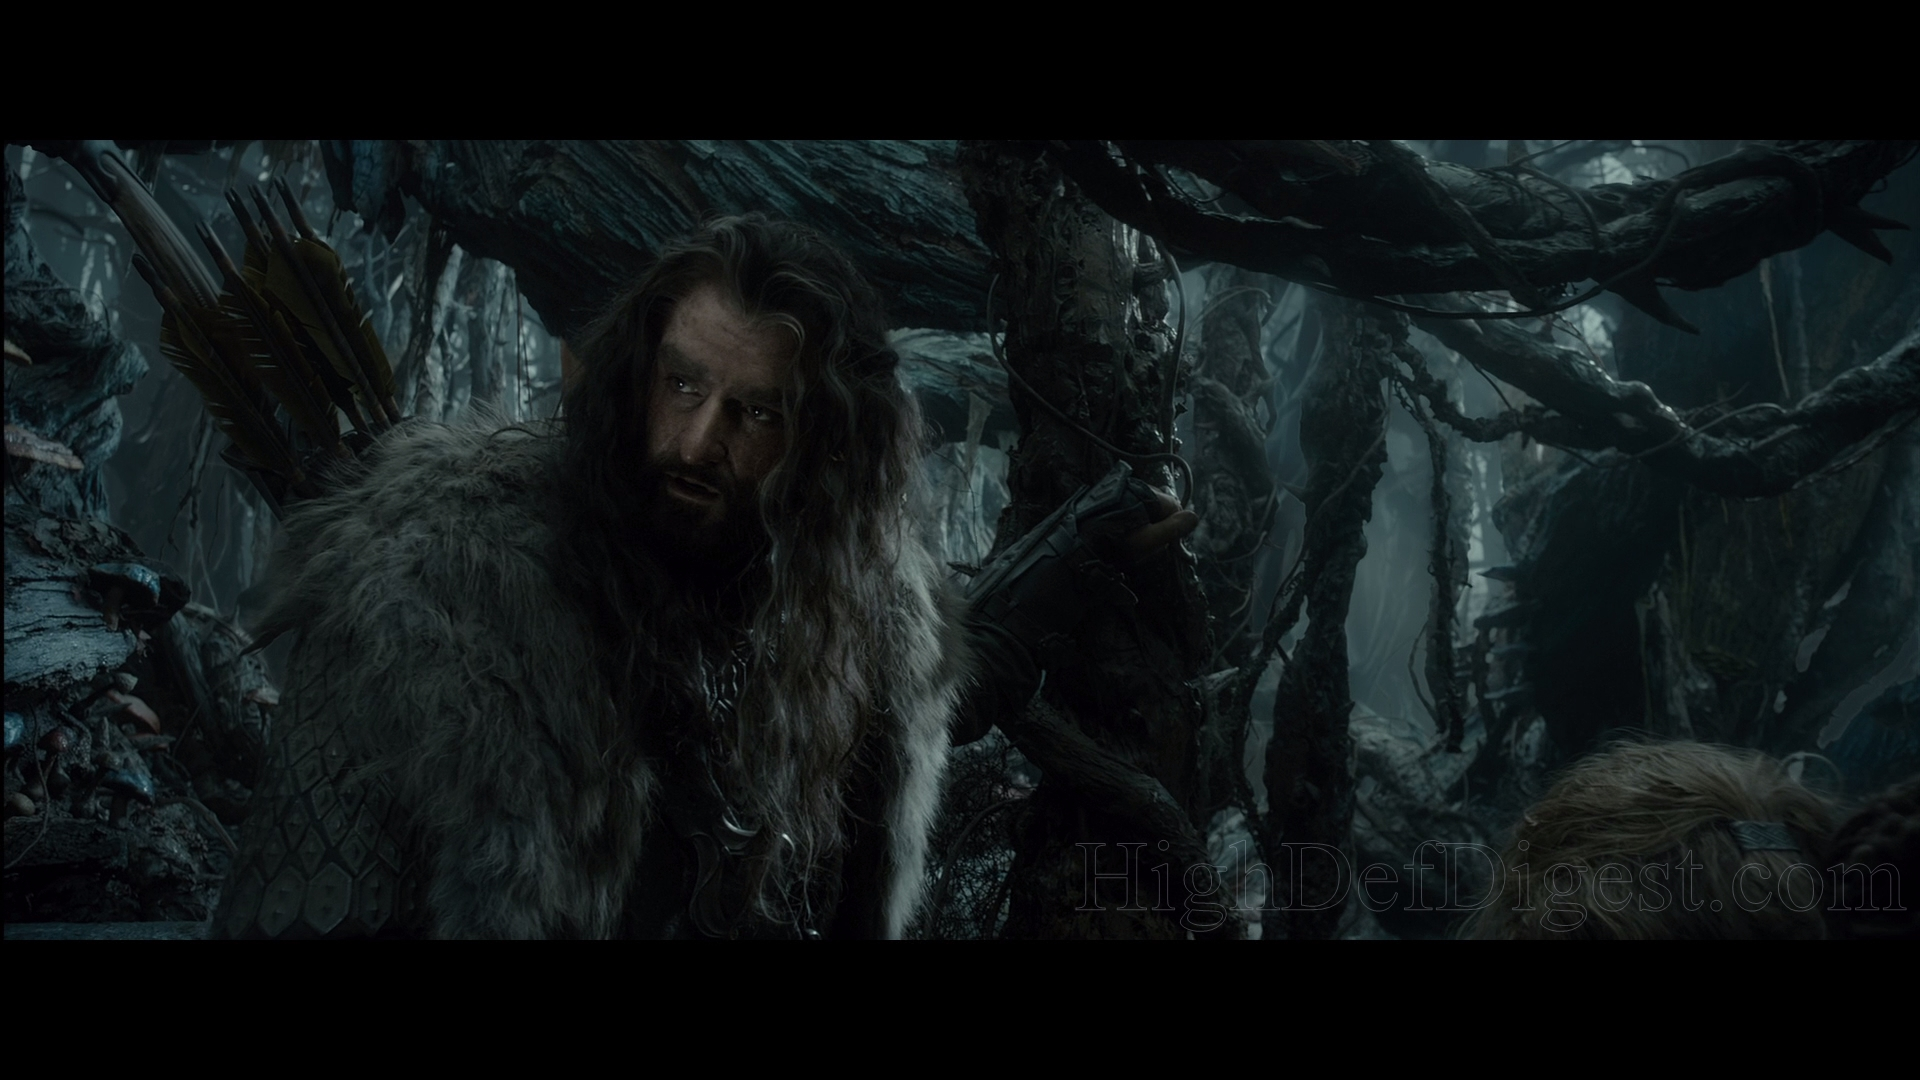 The Hobbit The Desolation of Smaug Bluray Extended